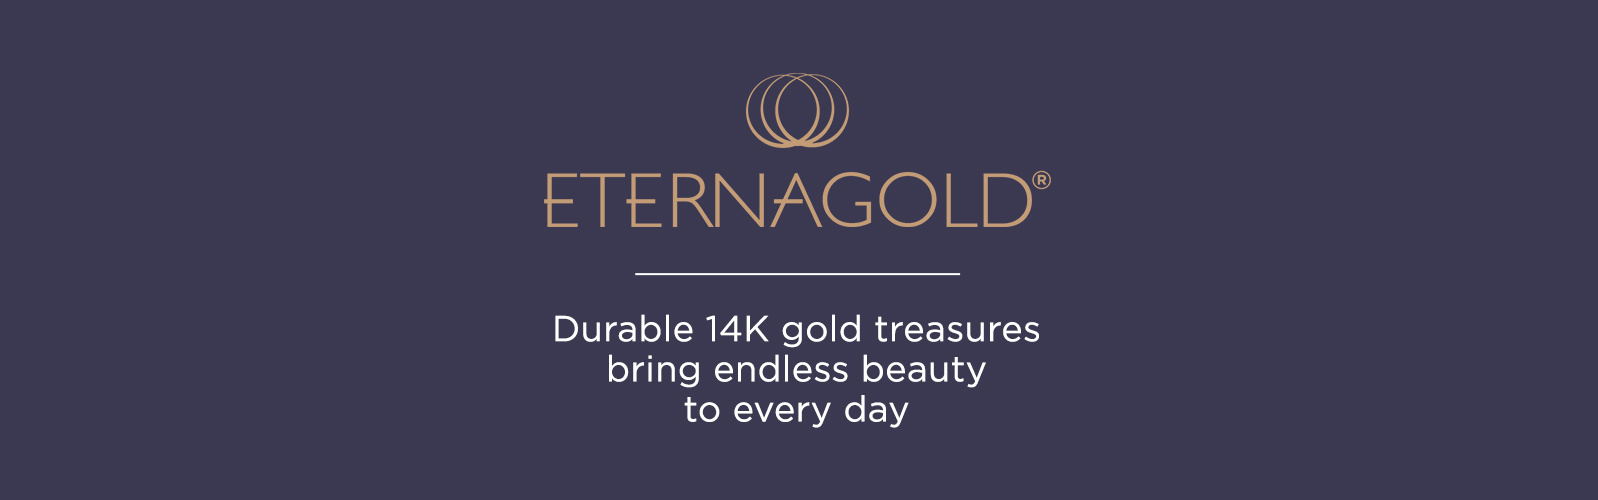 EternaGold. Durable 14k gold treasures bring endless beauty to every day